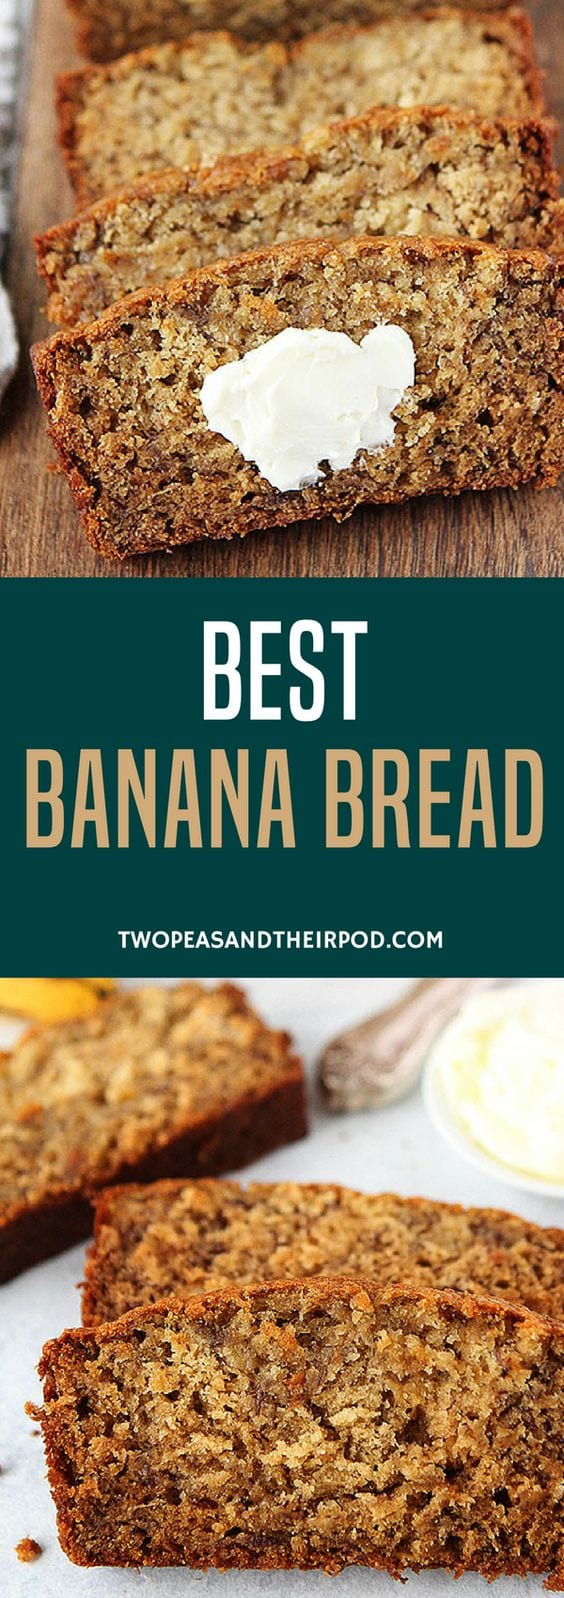 Tips For Turning Your Brown Bananas Into The Best Banana Bread EVER! This Classic Banana Bread Recipe Is Easy To Make And A Family Favorite! It Is Guaranteed To Be Your Go To Banana Bread Recipe! #bananabread #bananas #bread #breadrecipe #quickbread #baking